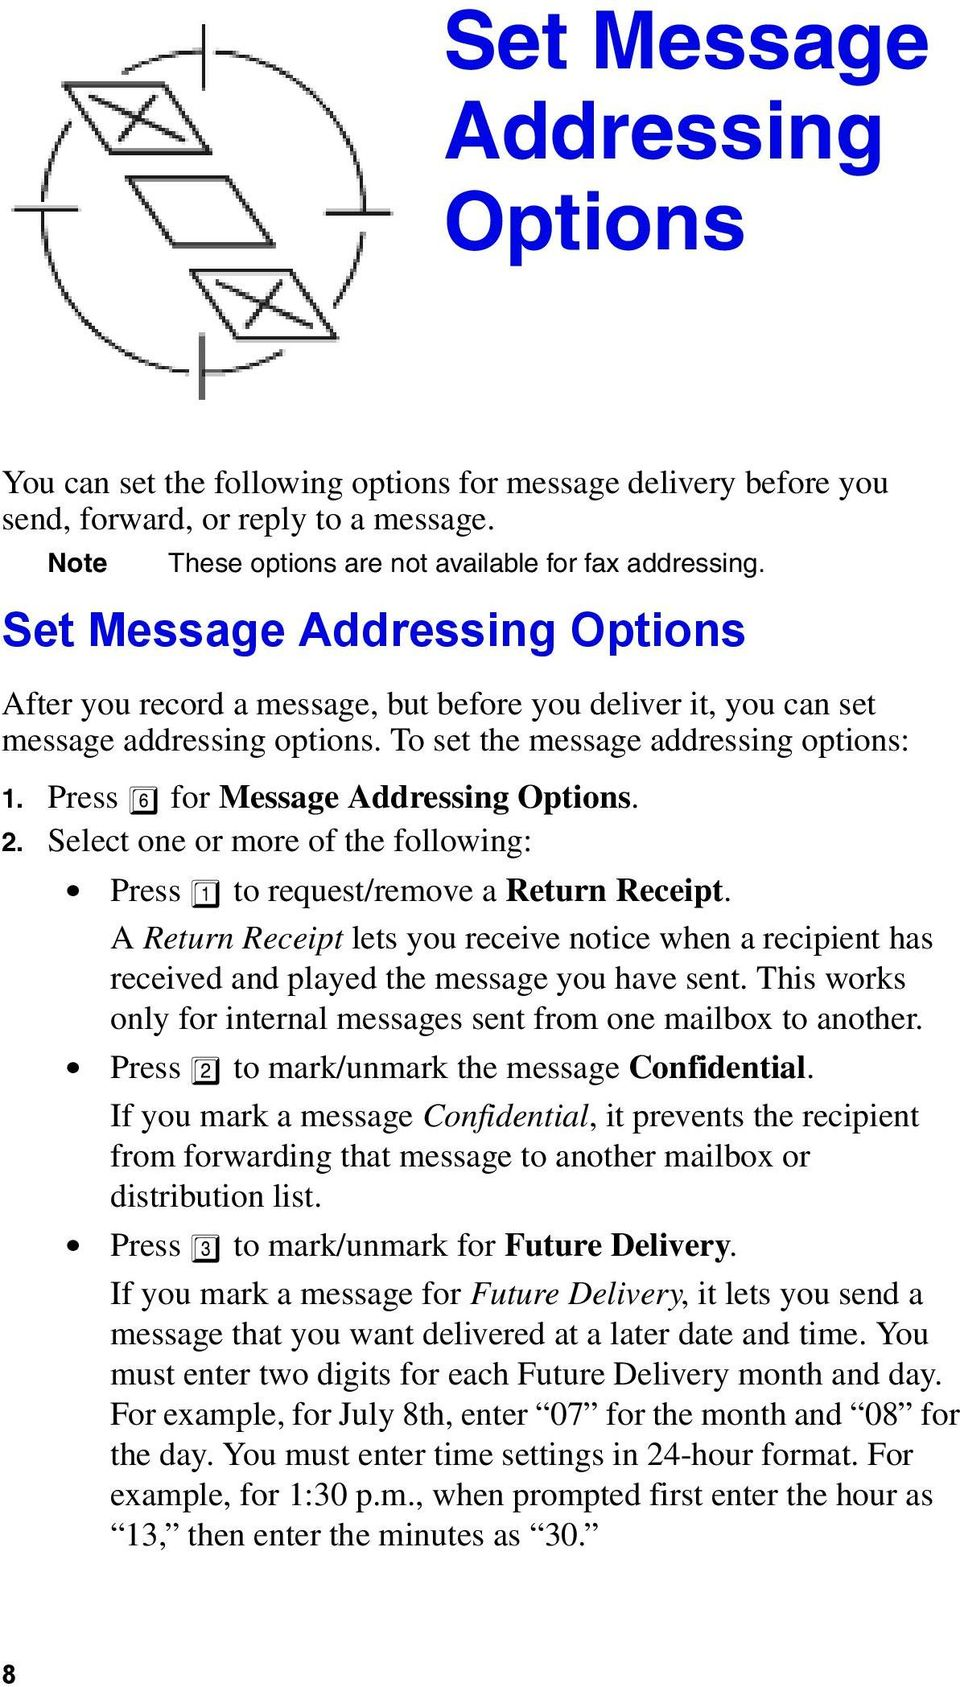 Press 6 for Message Addressing Options. 2. Select one or more of the following: Press 1 to request/remove a Return Receipt.